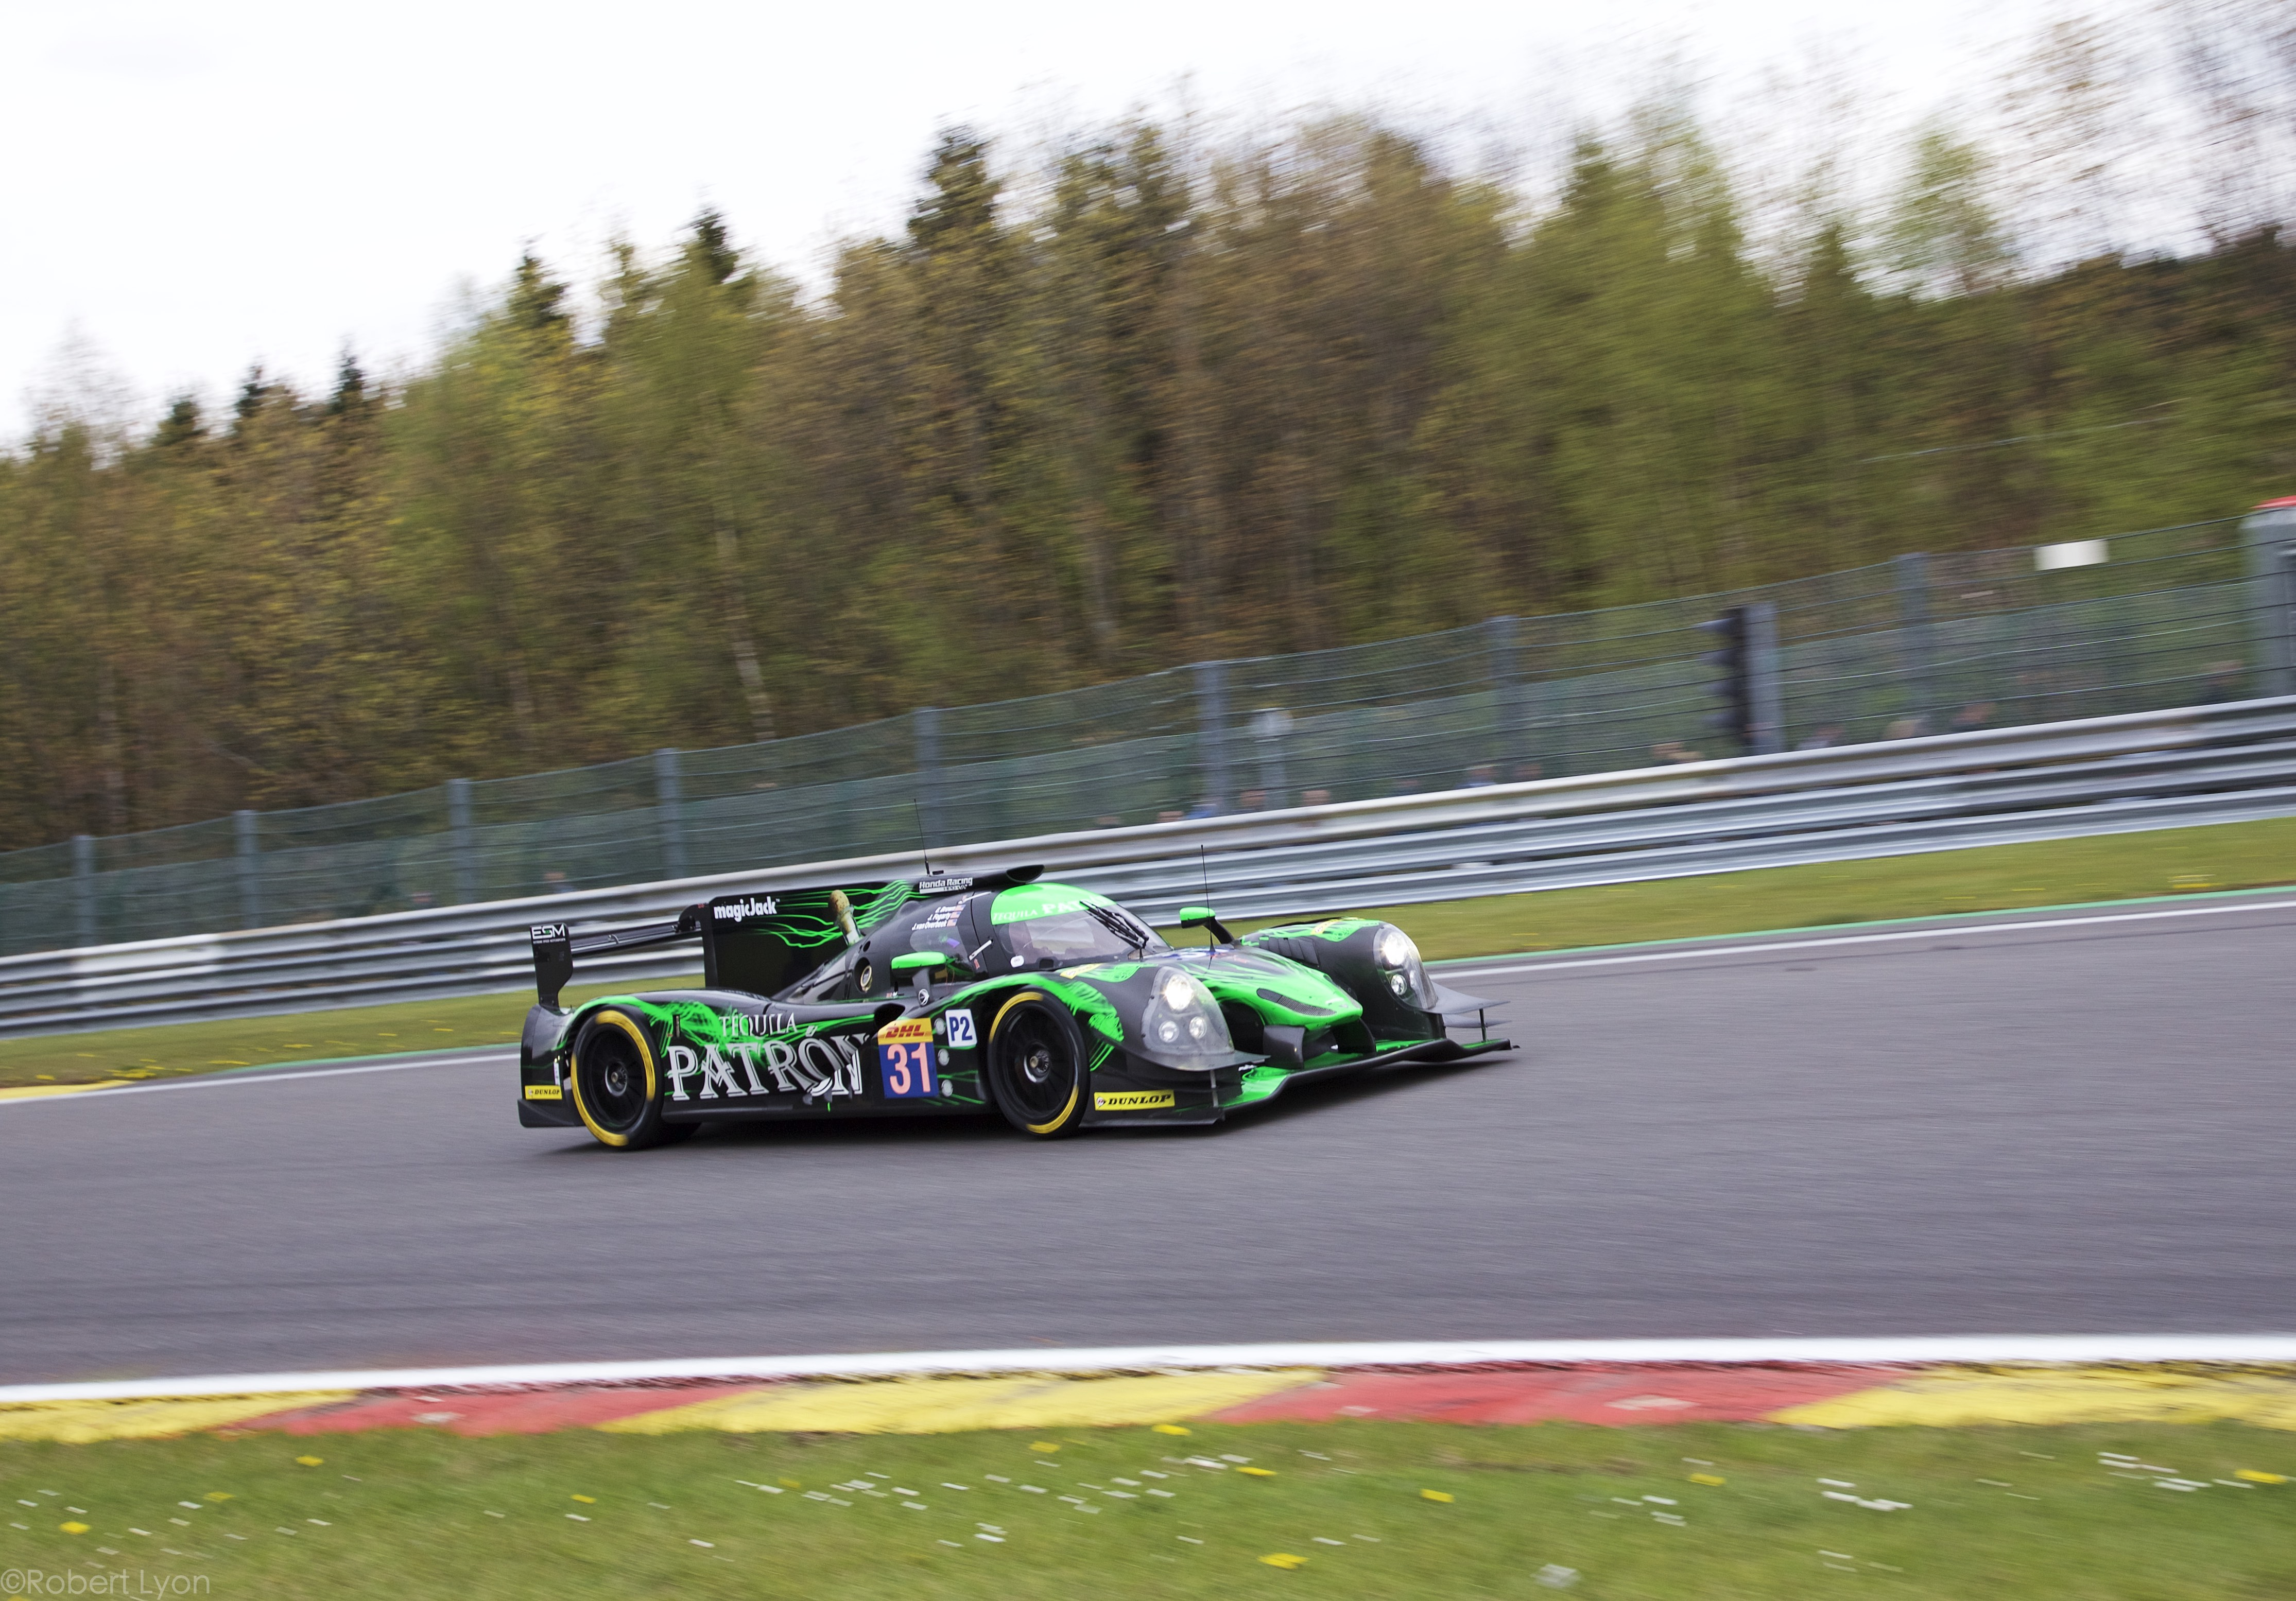 Tequila Patrón ESM Shows Speed and Potential at Spa as the Team Prepares for Le Mans